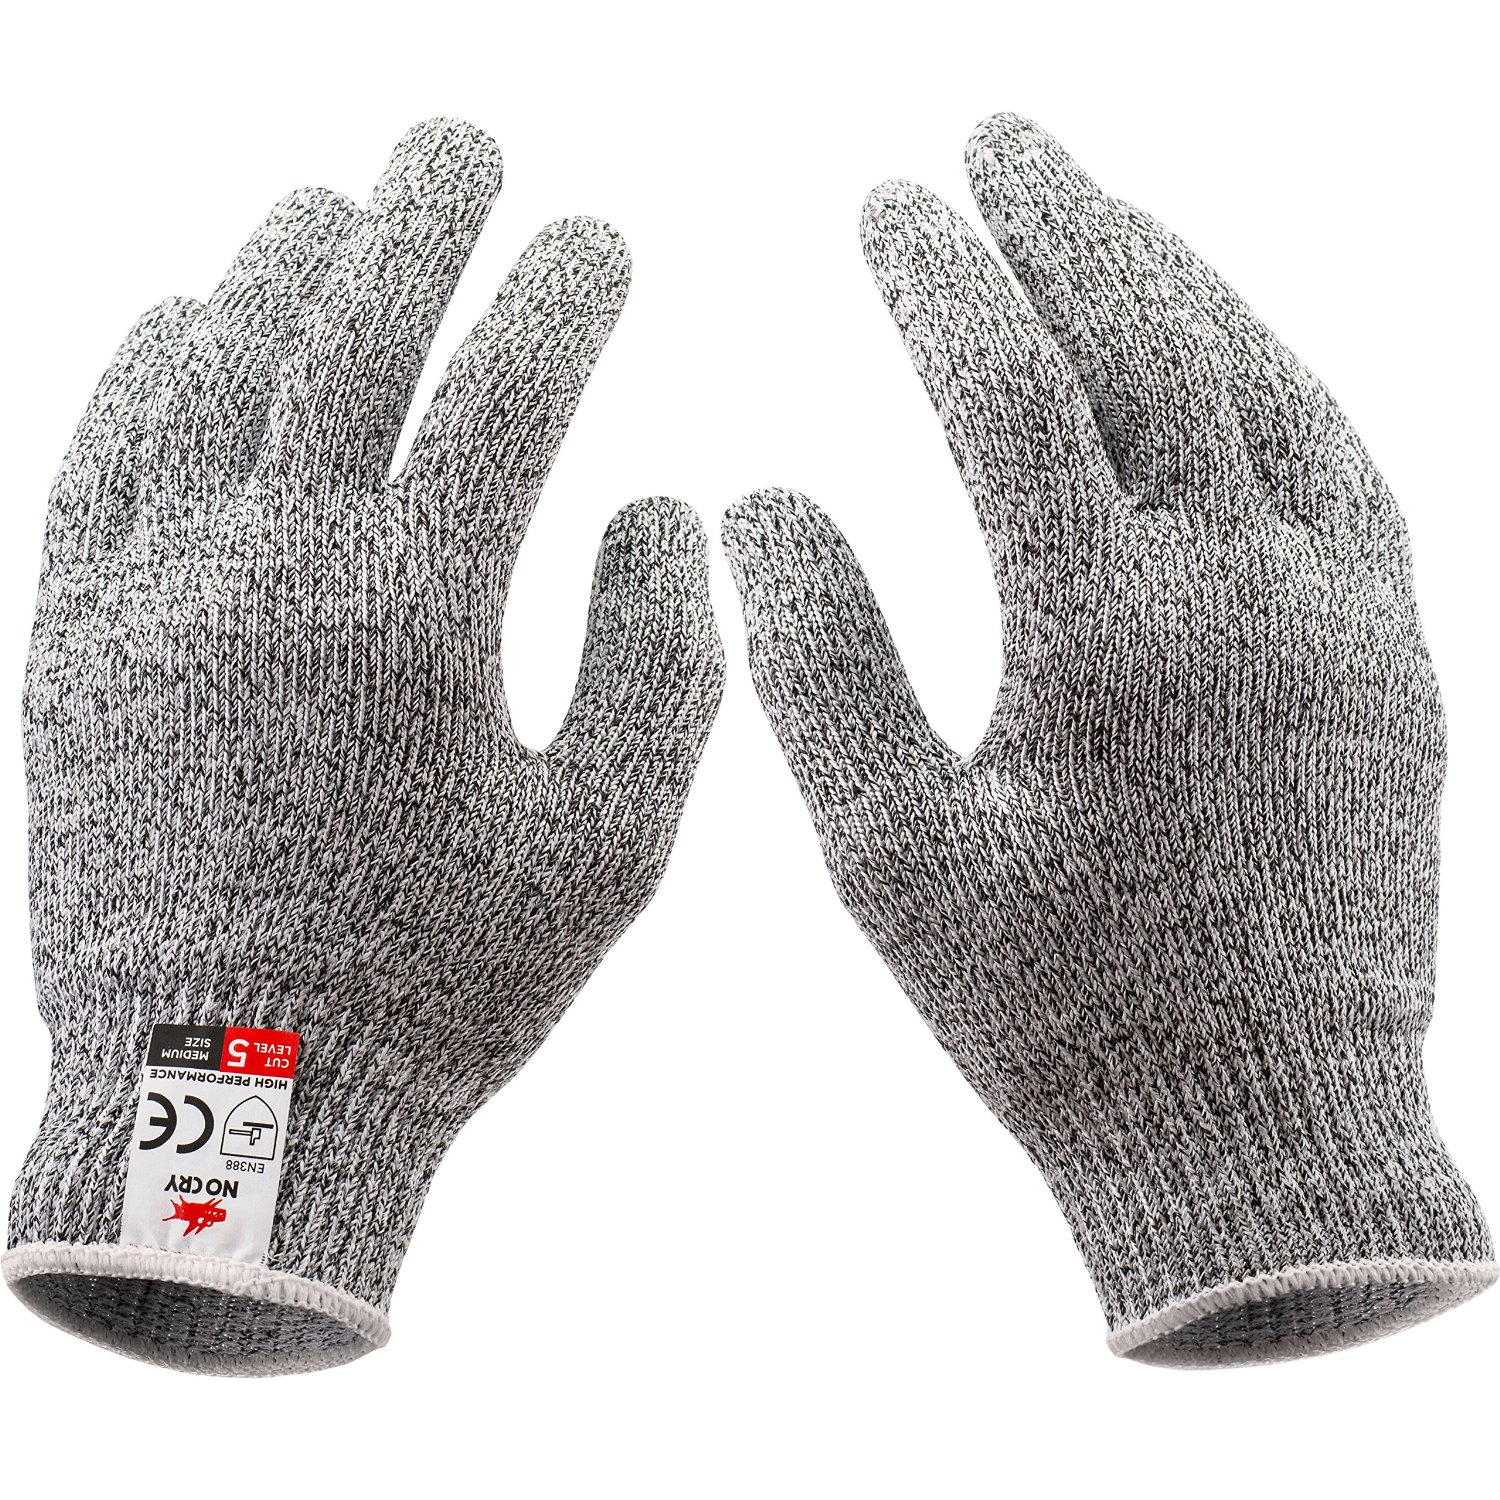 NoCry Cut Resistant Gloves 6